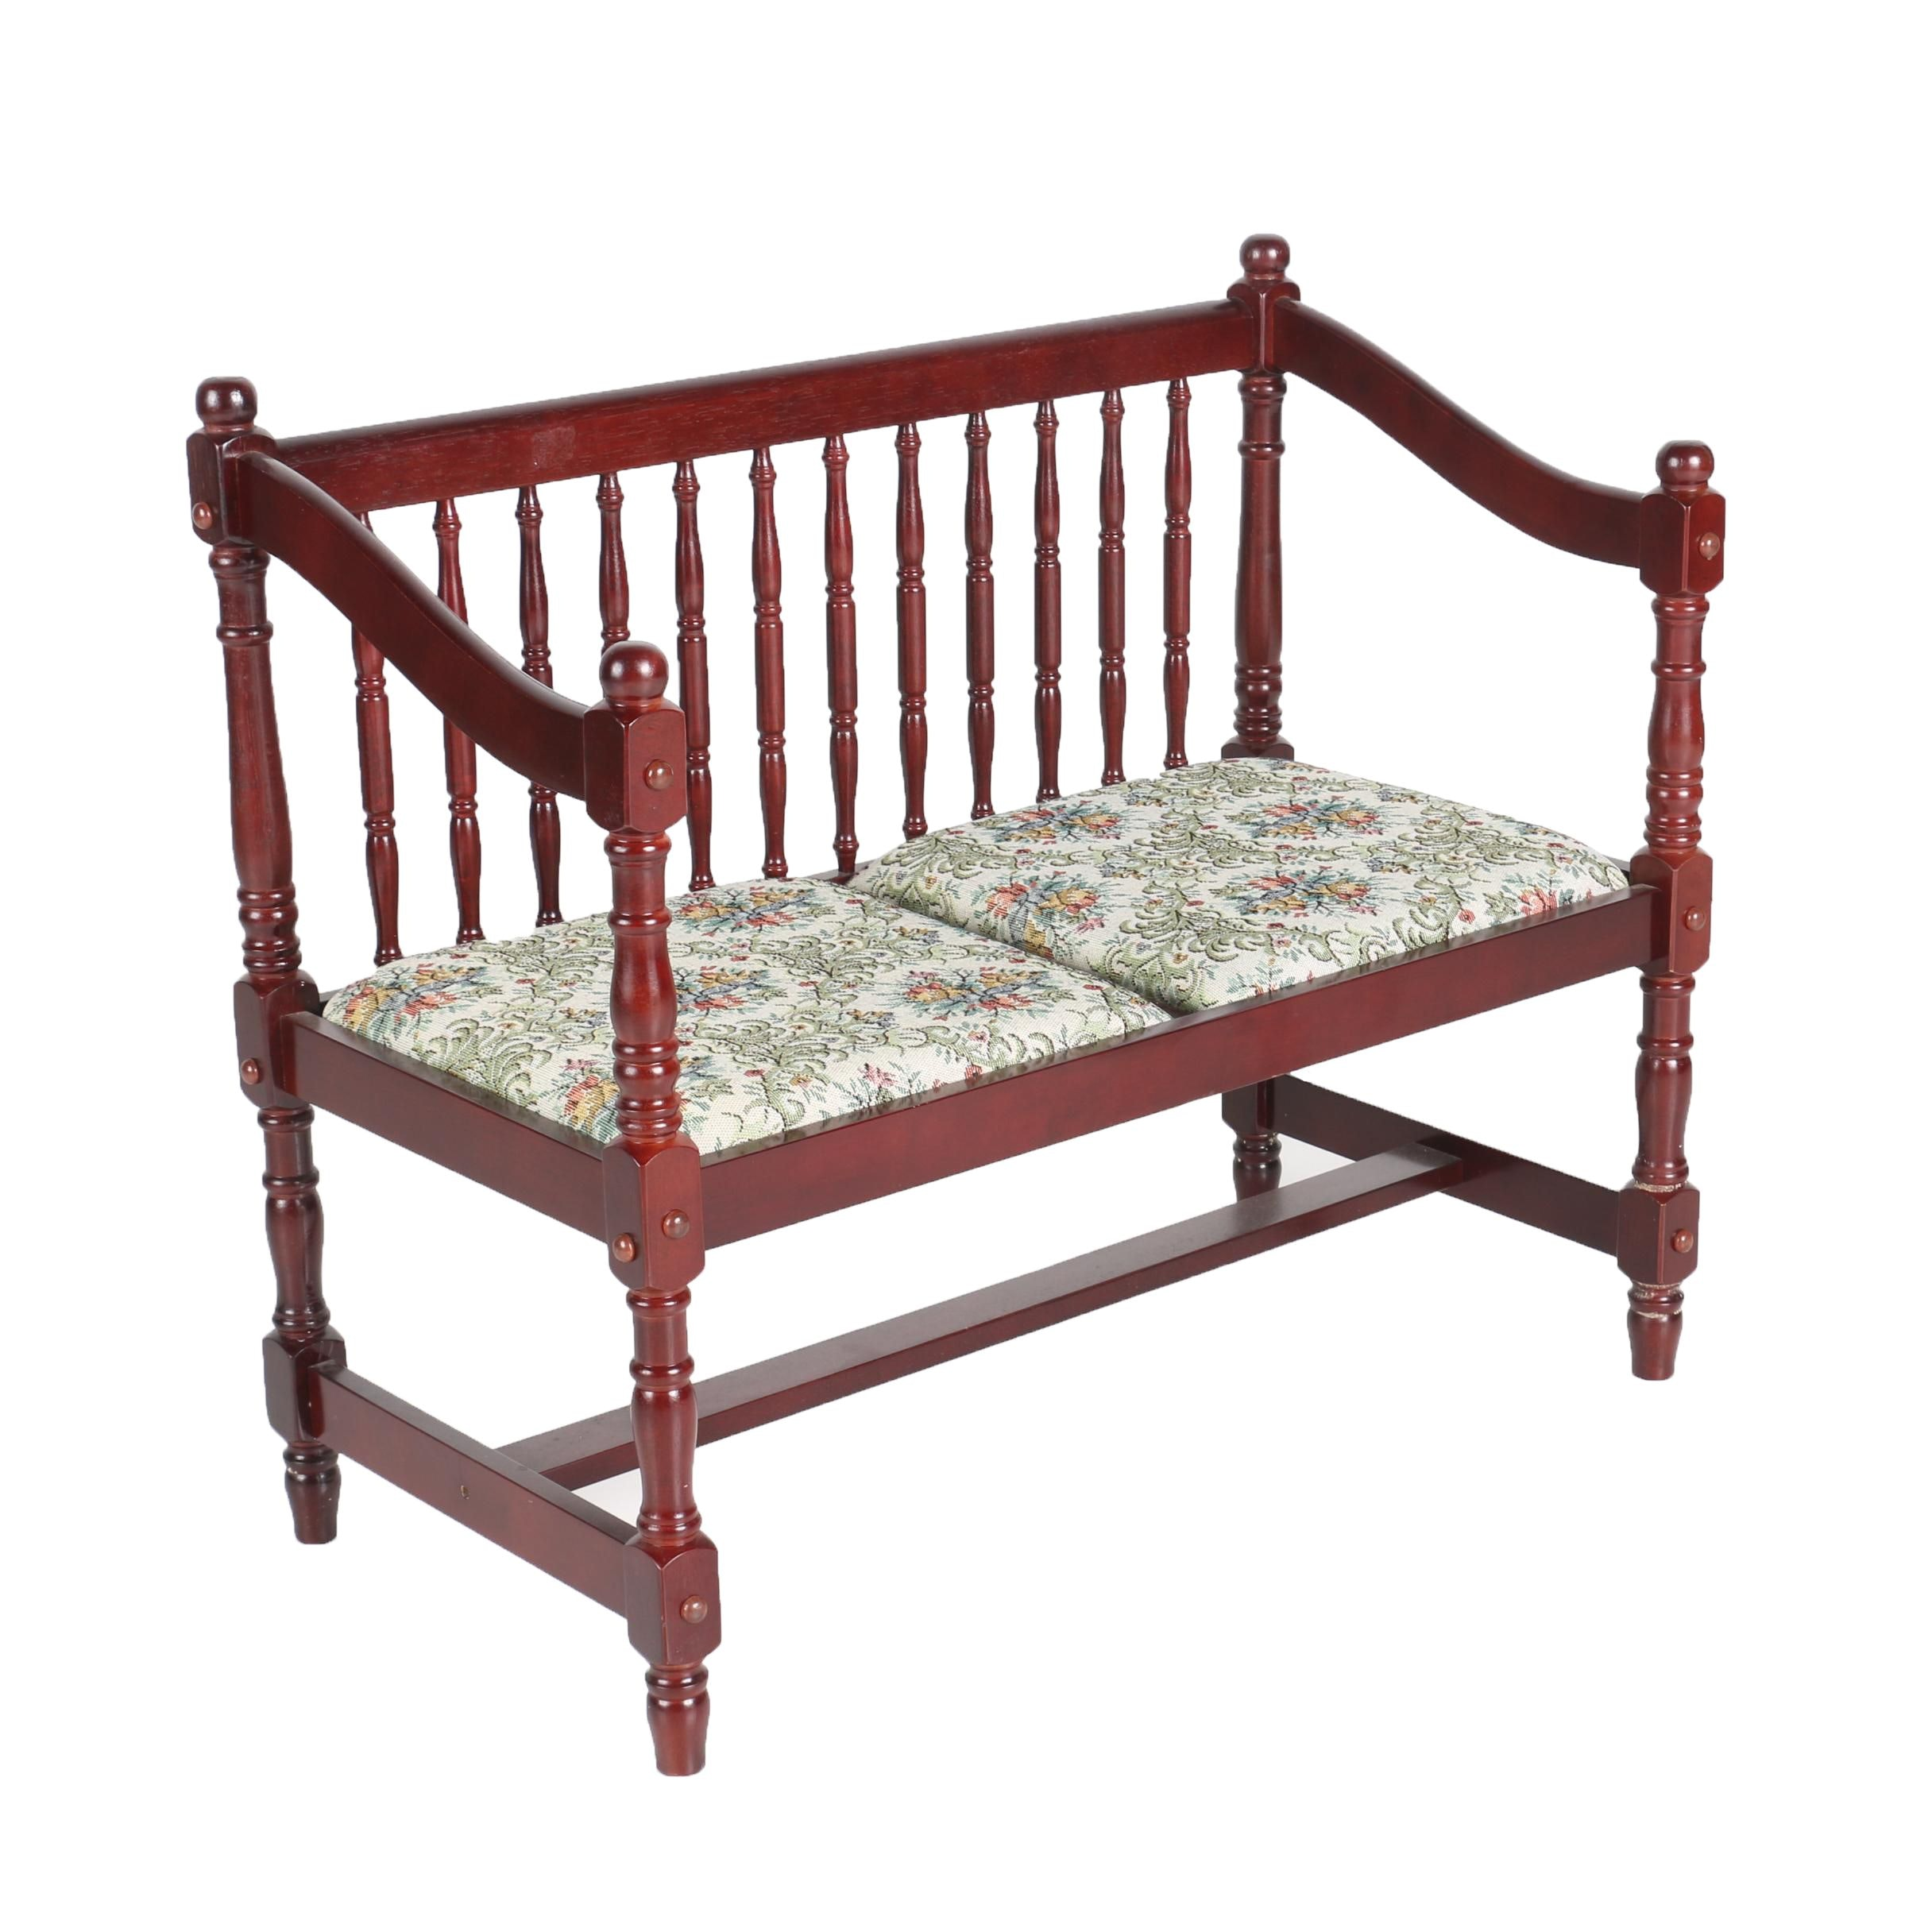 Spindle Back Bench with Floral Upholstery